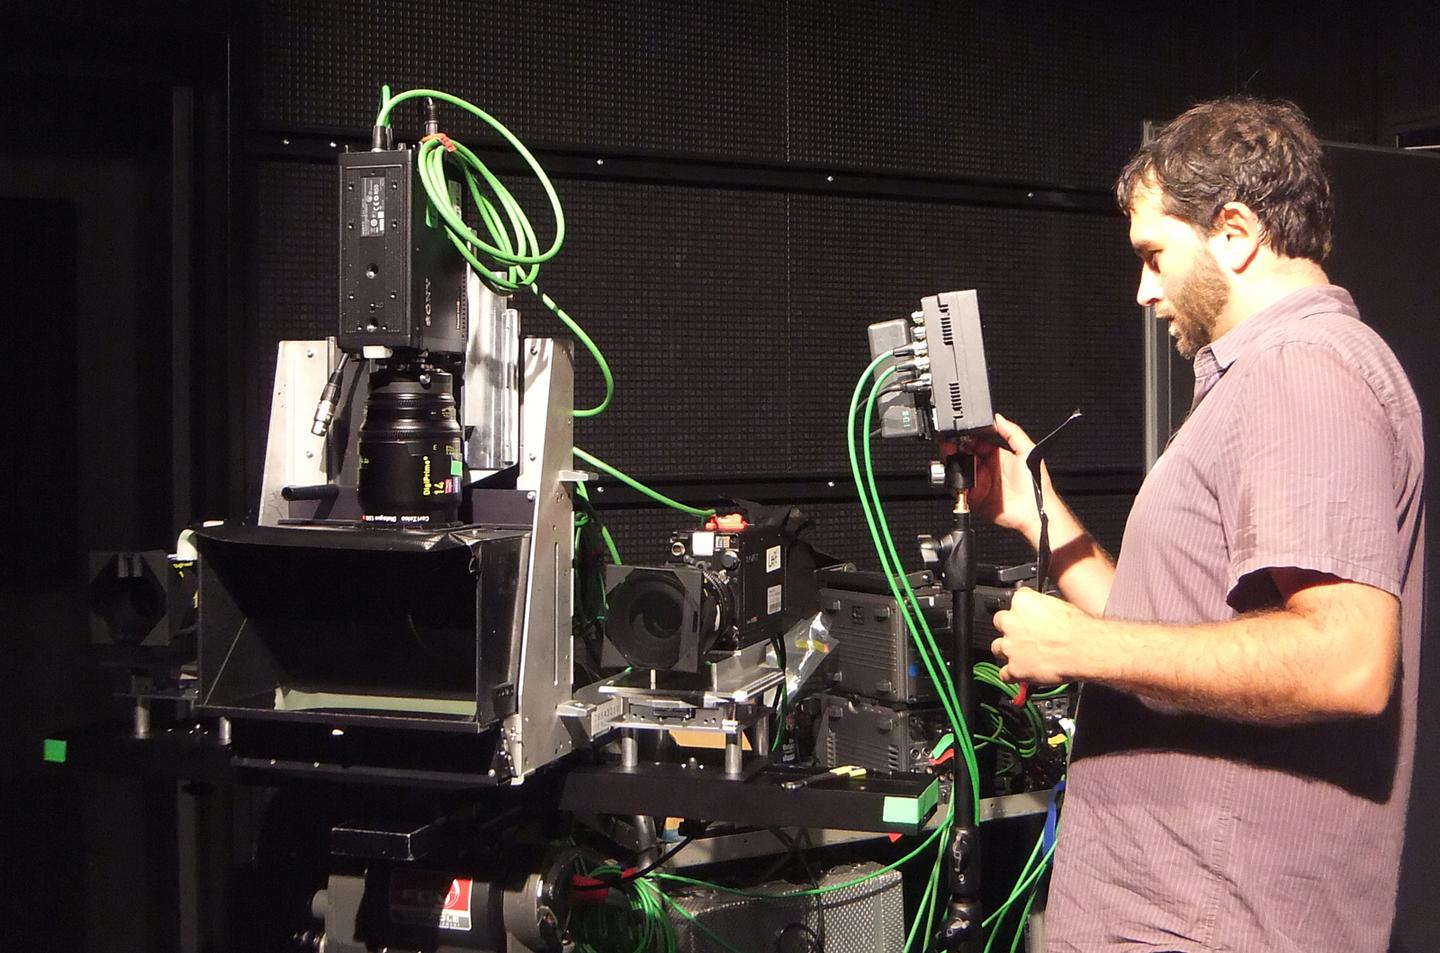 A scientist uses STAN to calibrate a four-camera 3D TV system(Photo: KUK Filmproduktion)